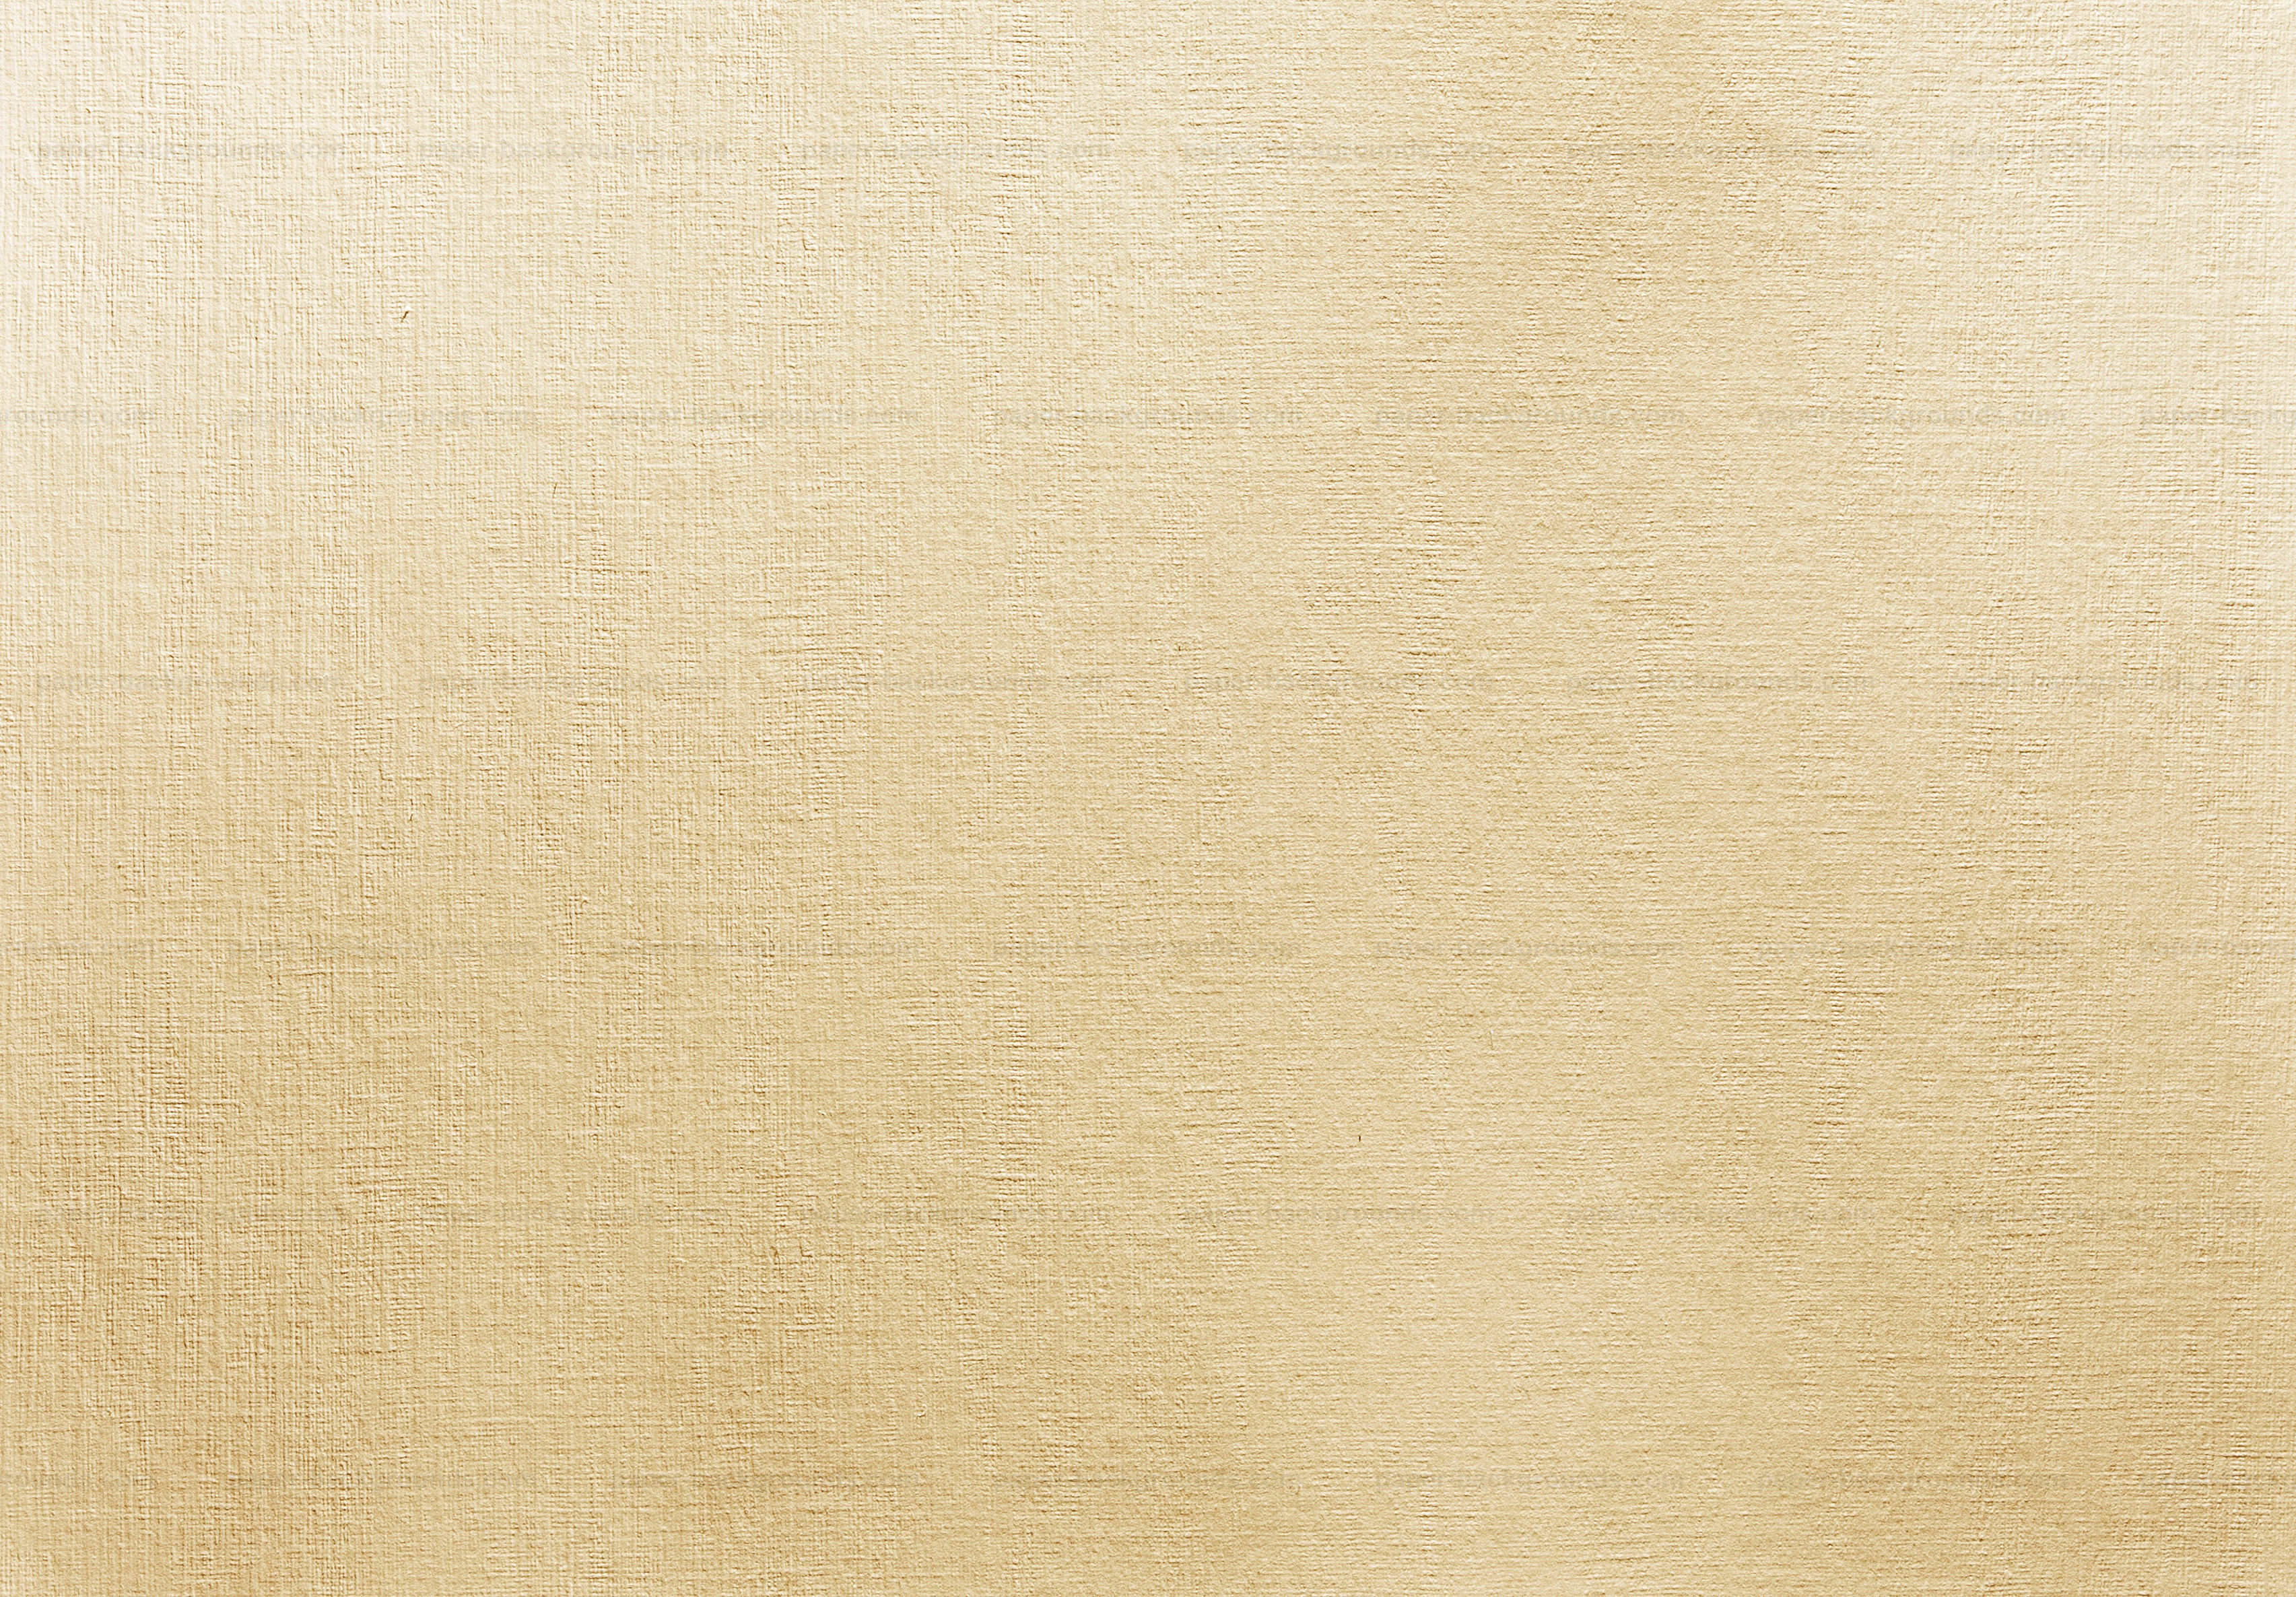 Paper Backgrounds Natural Paper Background Texture Vintage 3410x2372